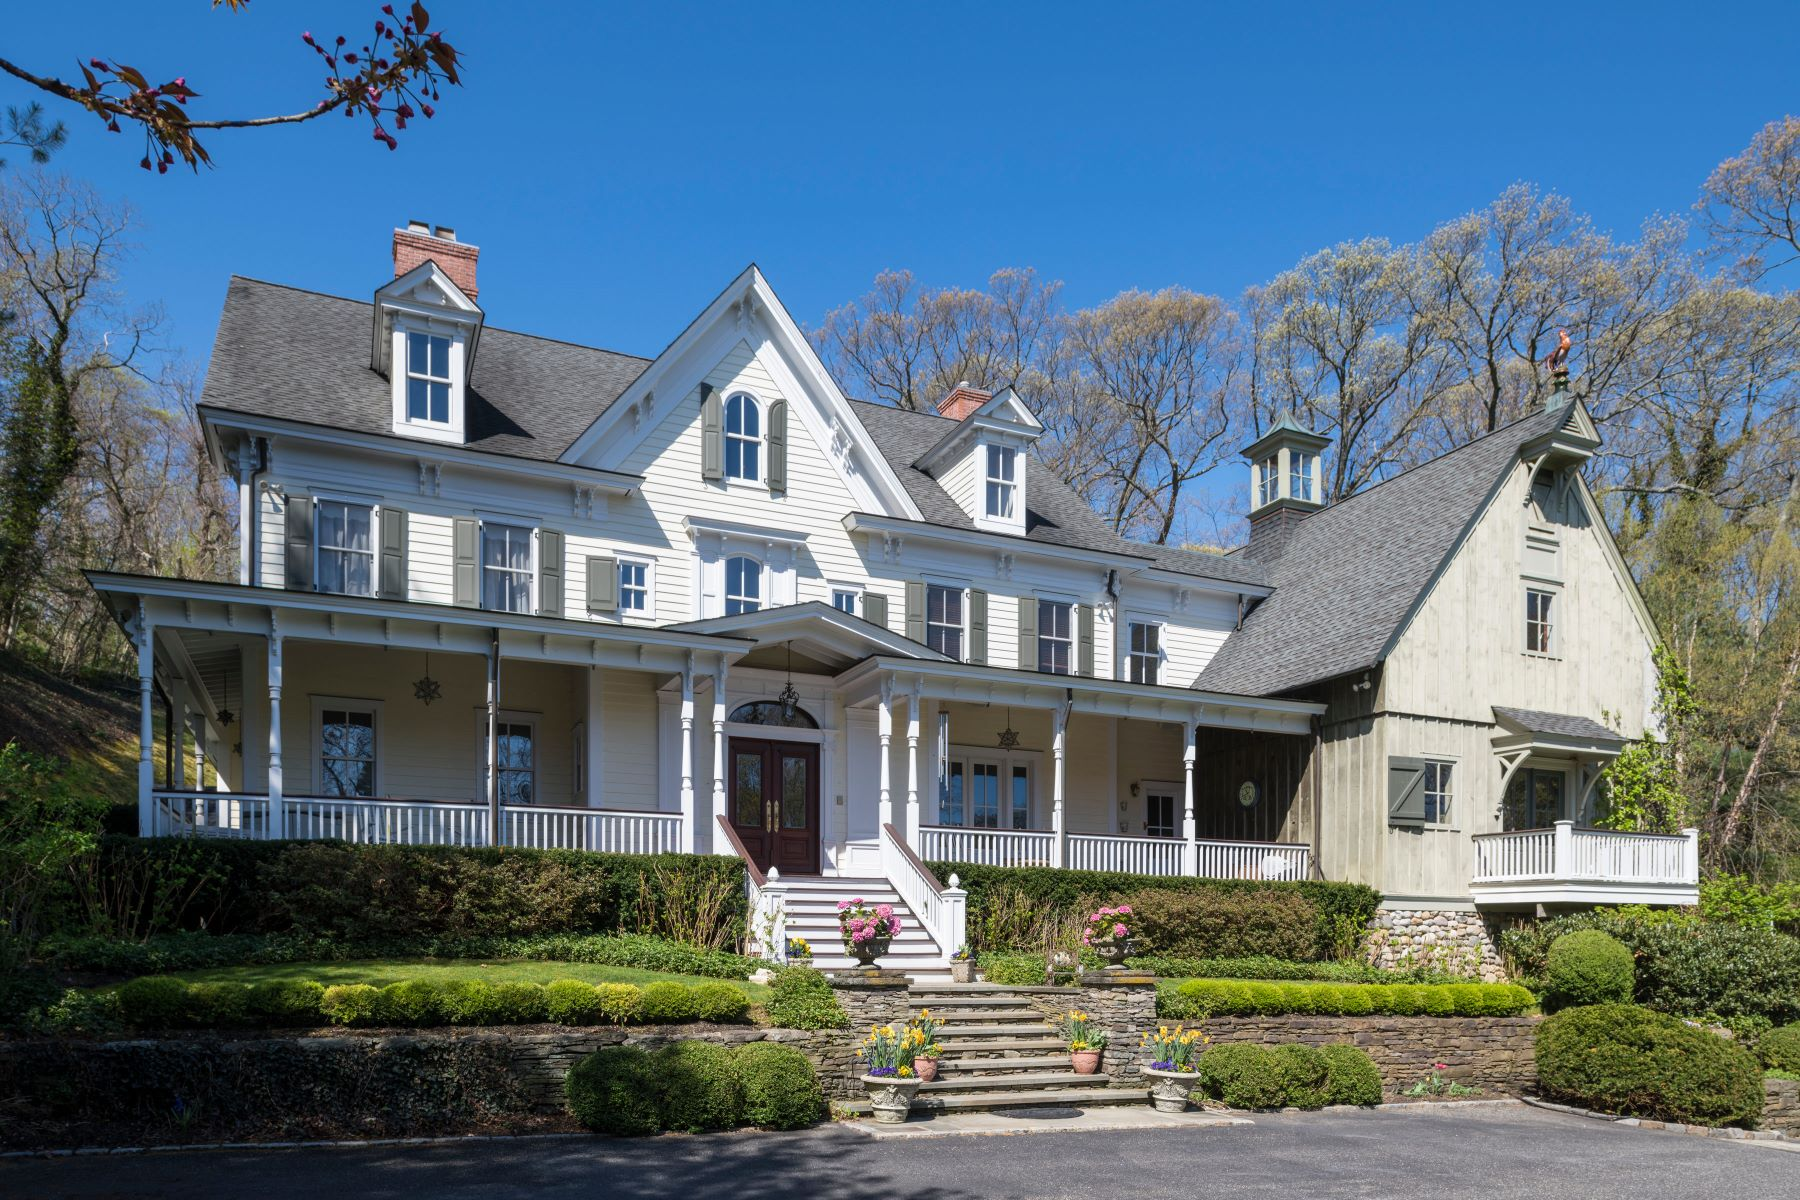 Single Family Homes for Sale at Col Spring Harbor NY 100 Turkey Ln Cold Spring Harbor, New York 11724 United States